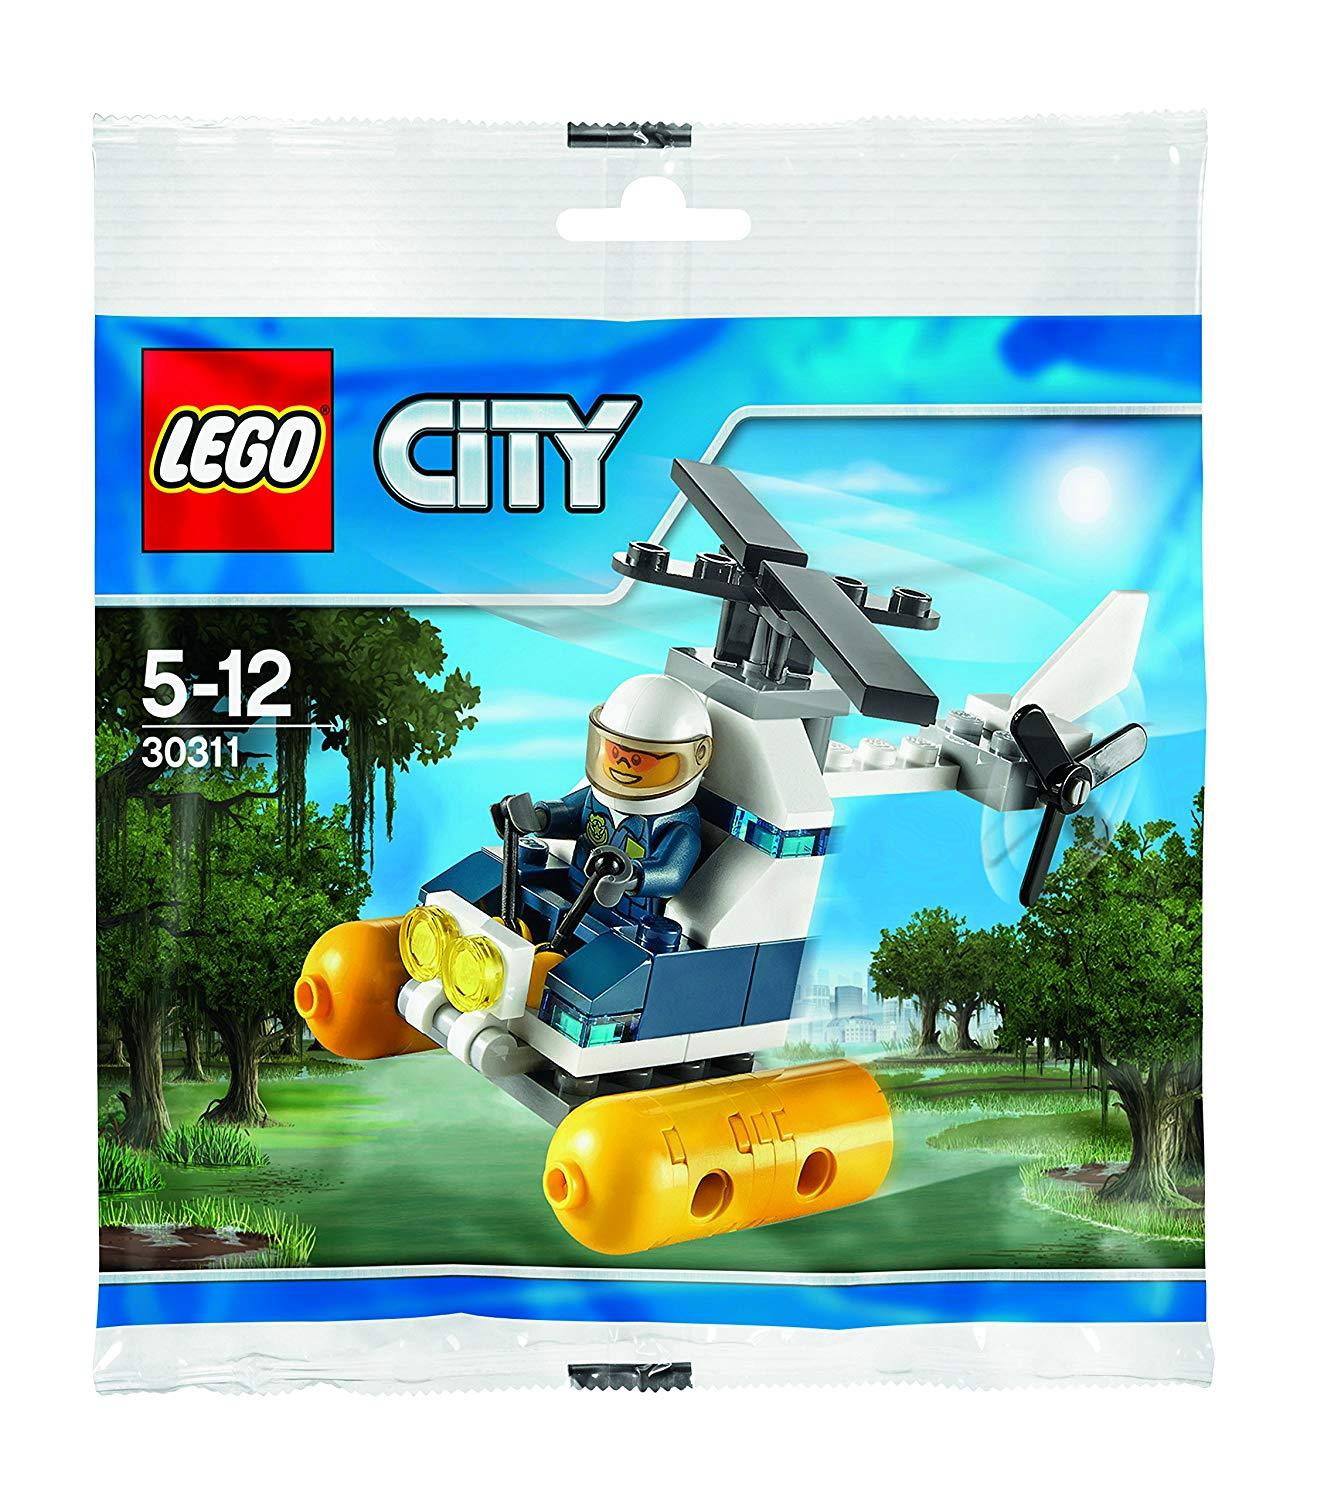 Building Blocks For Sale Toy Online Brands Prices Lego 10720 Juniors Police Helicopter Chase City 30311 Swamp